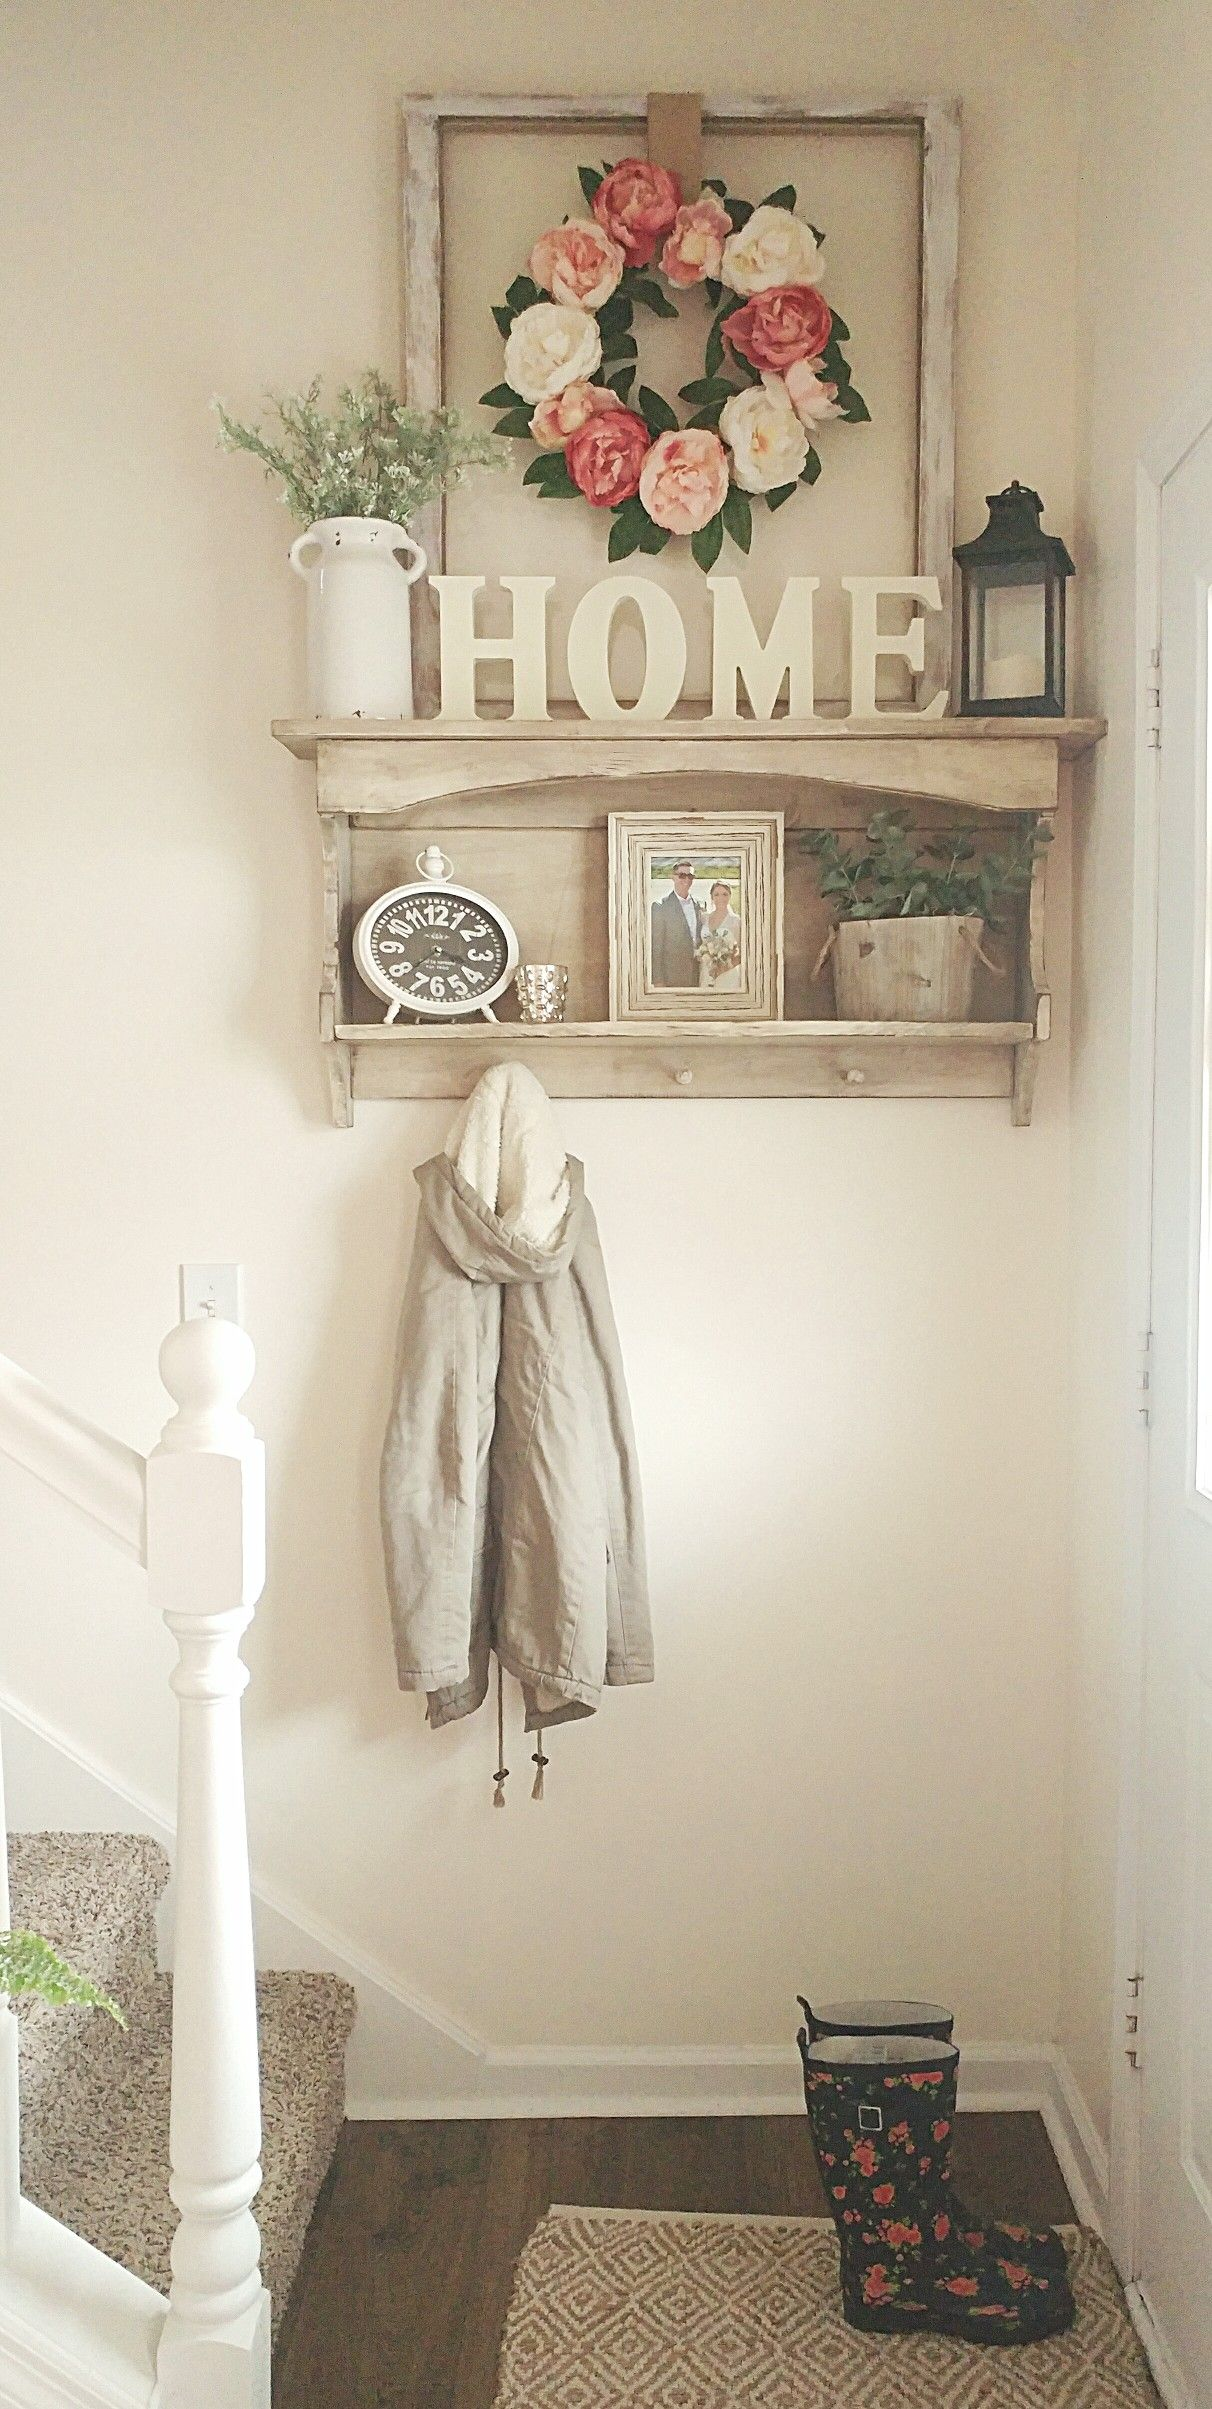 Shelves White Walls And Entry Ways: Small Entryway Spring Flowers Country White Farmhouse Style In 2019